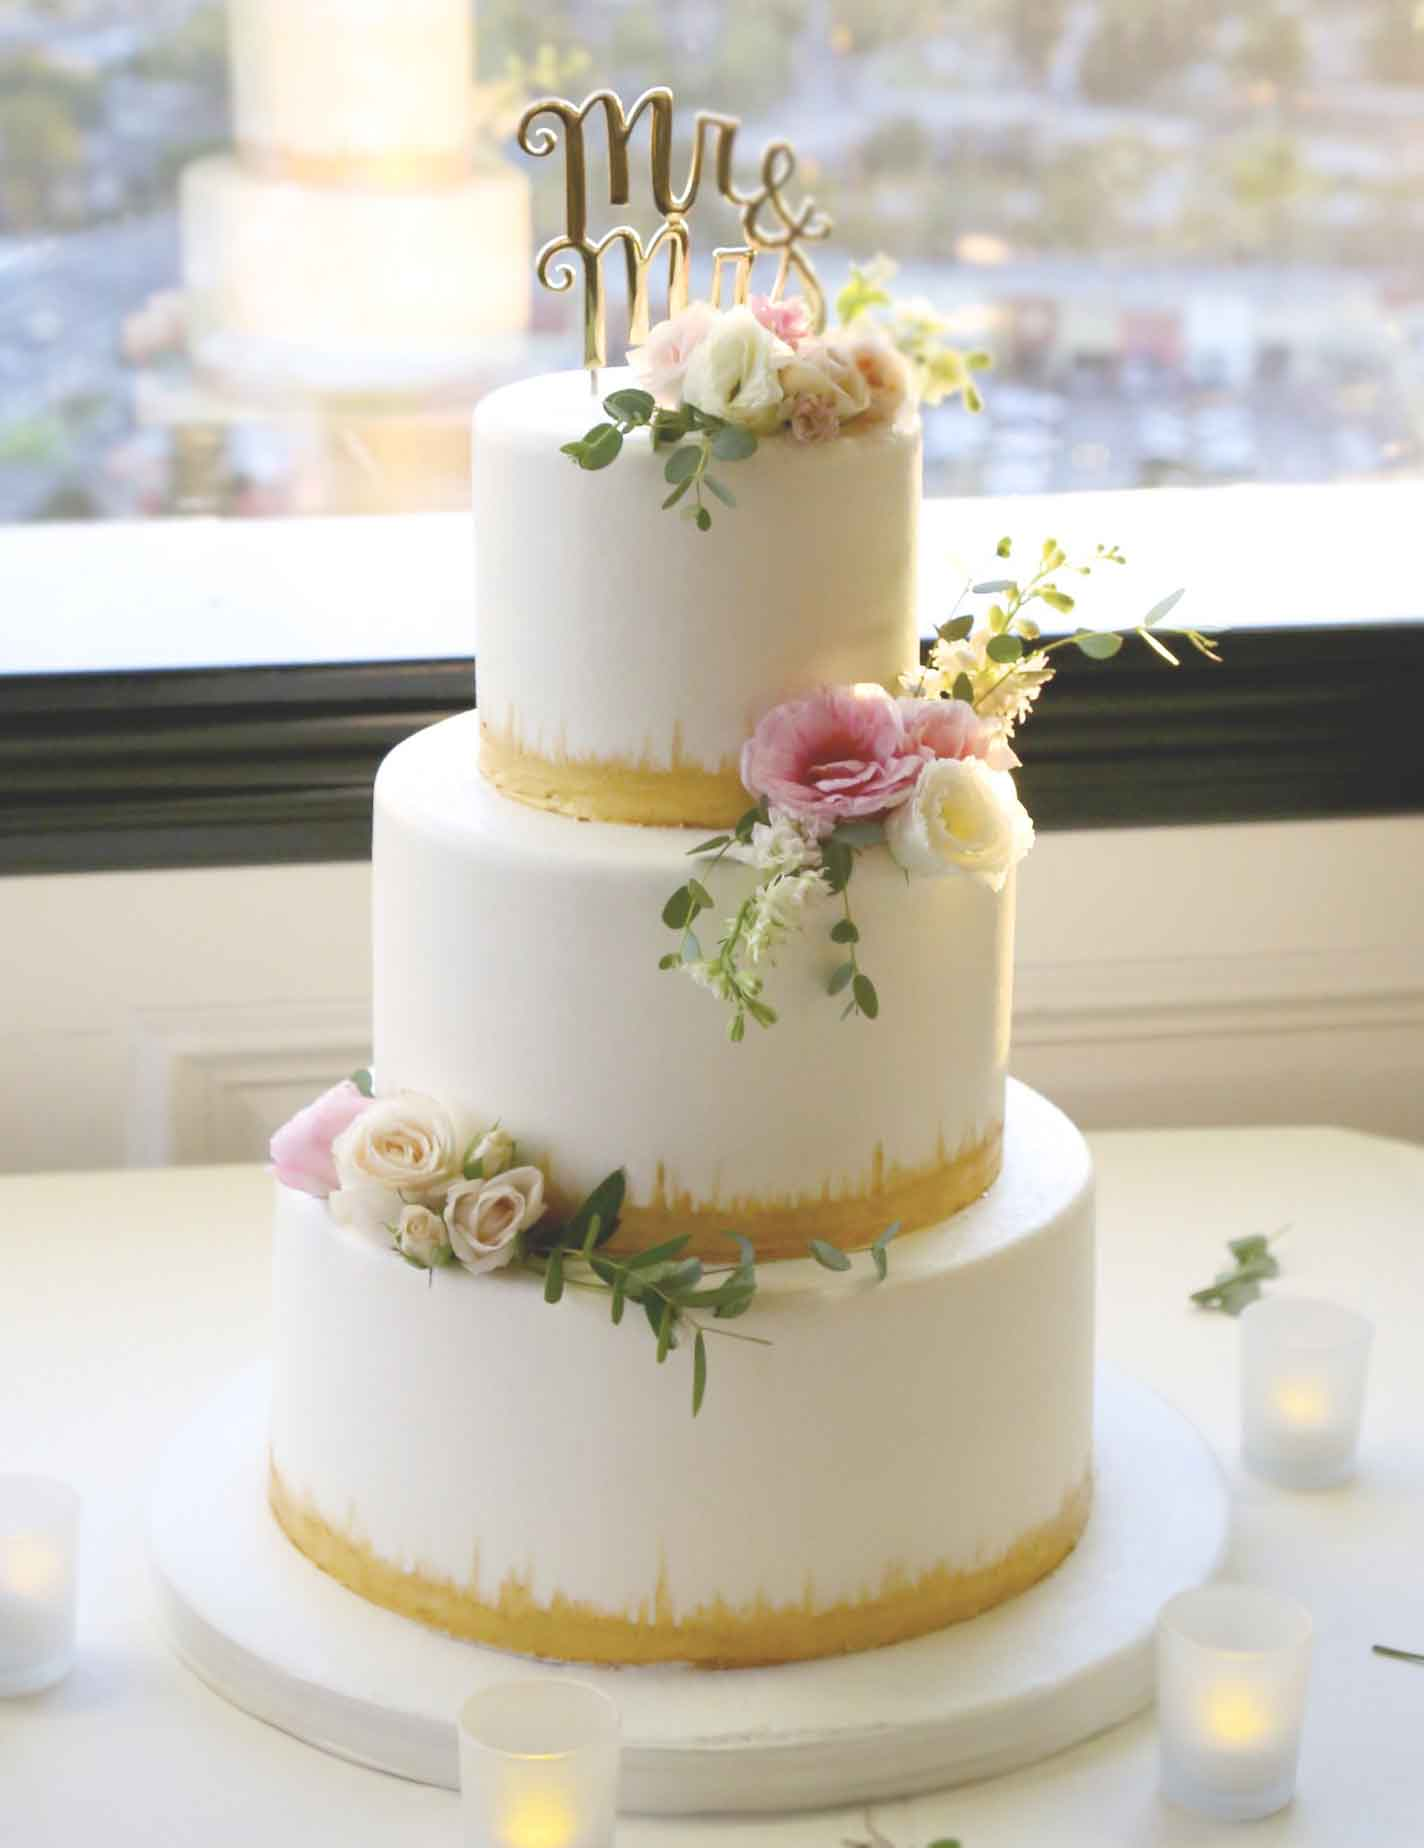 Lillian and Josh's three-tier wedding cake featured gold accents and pink roses